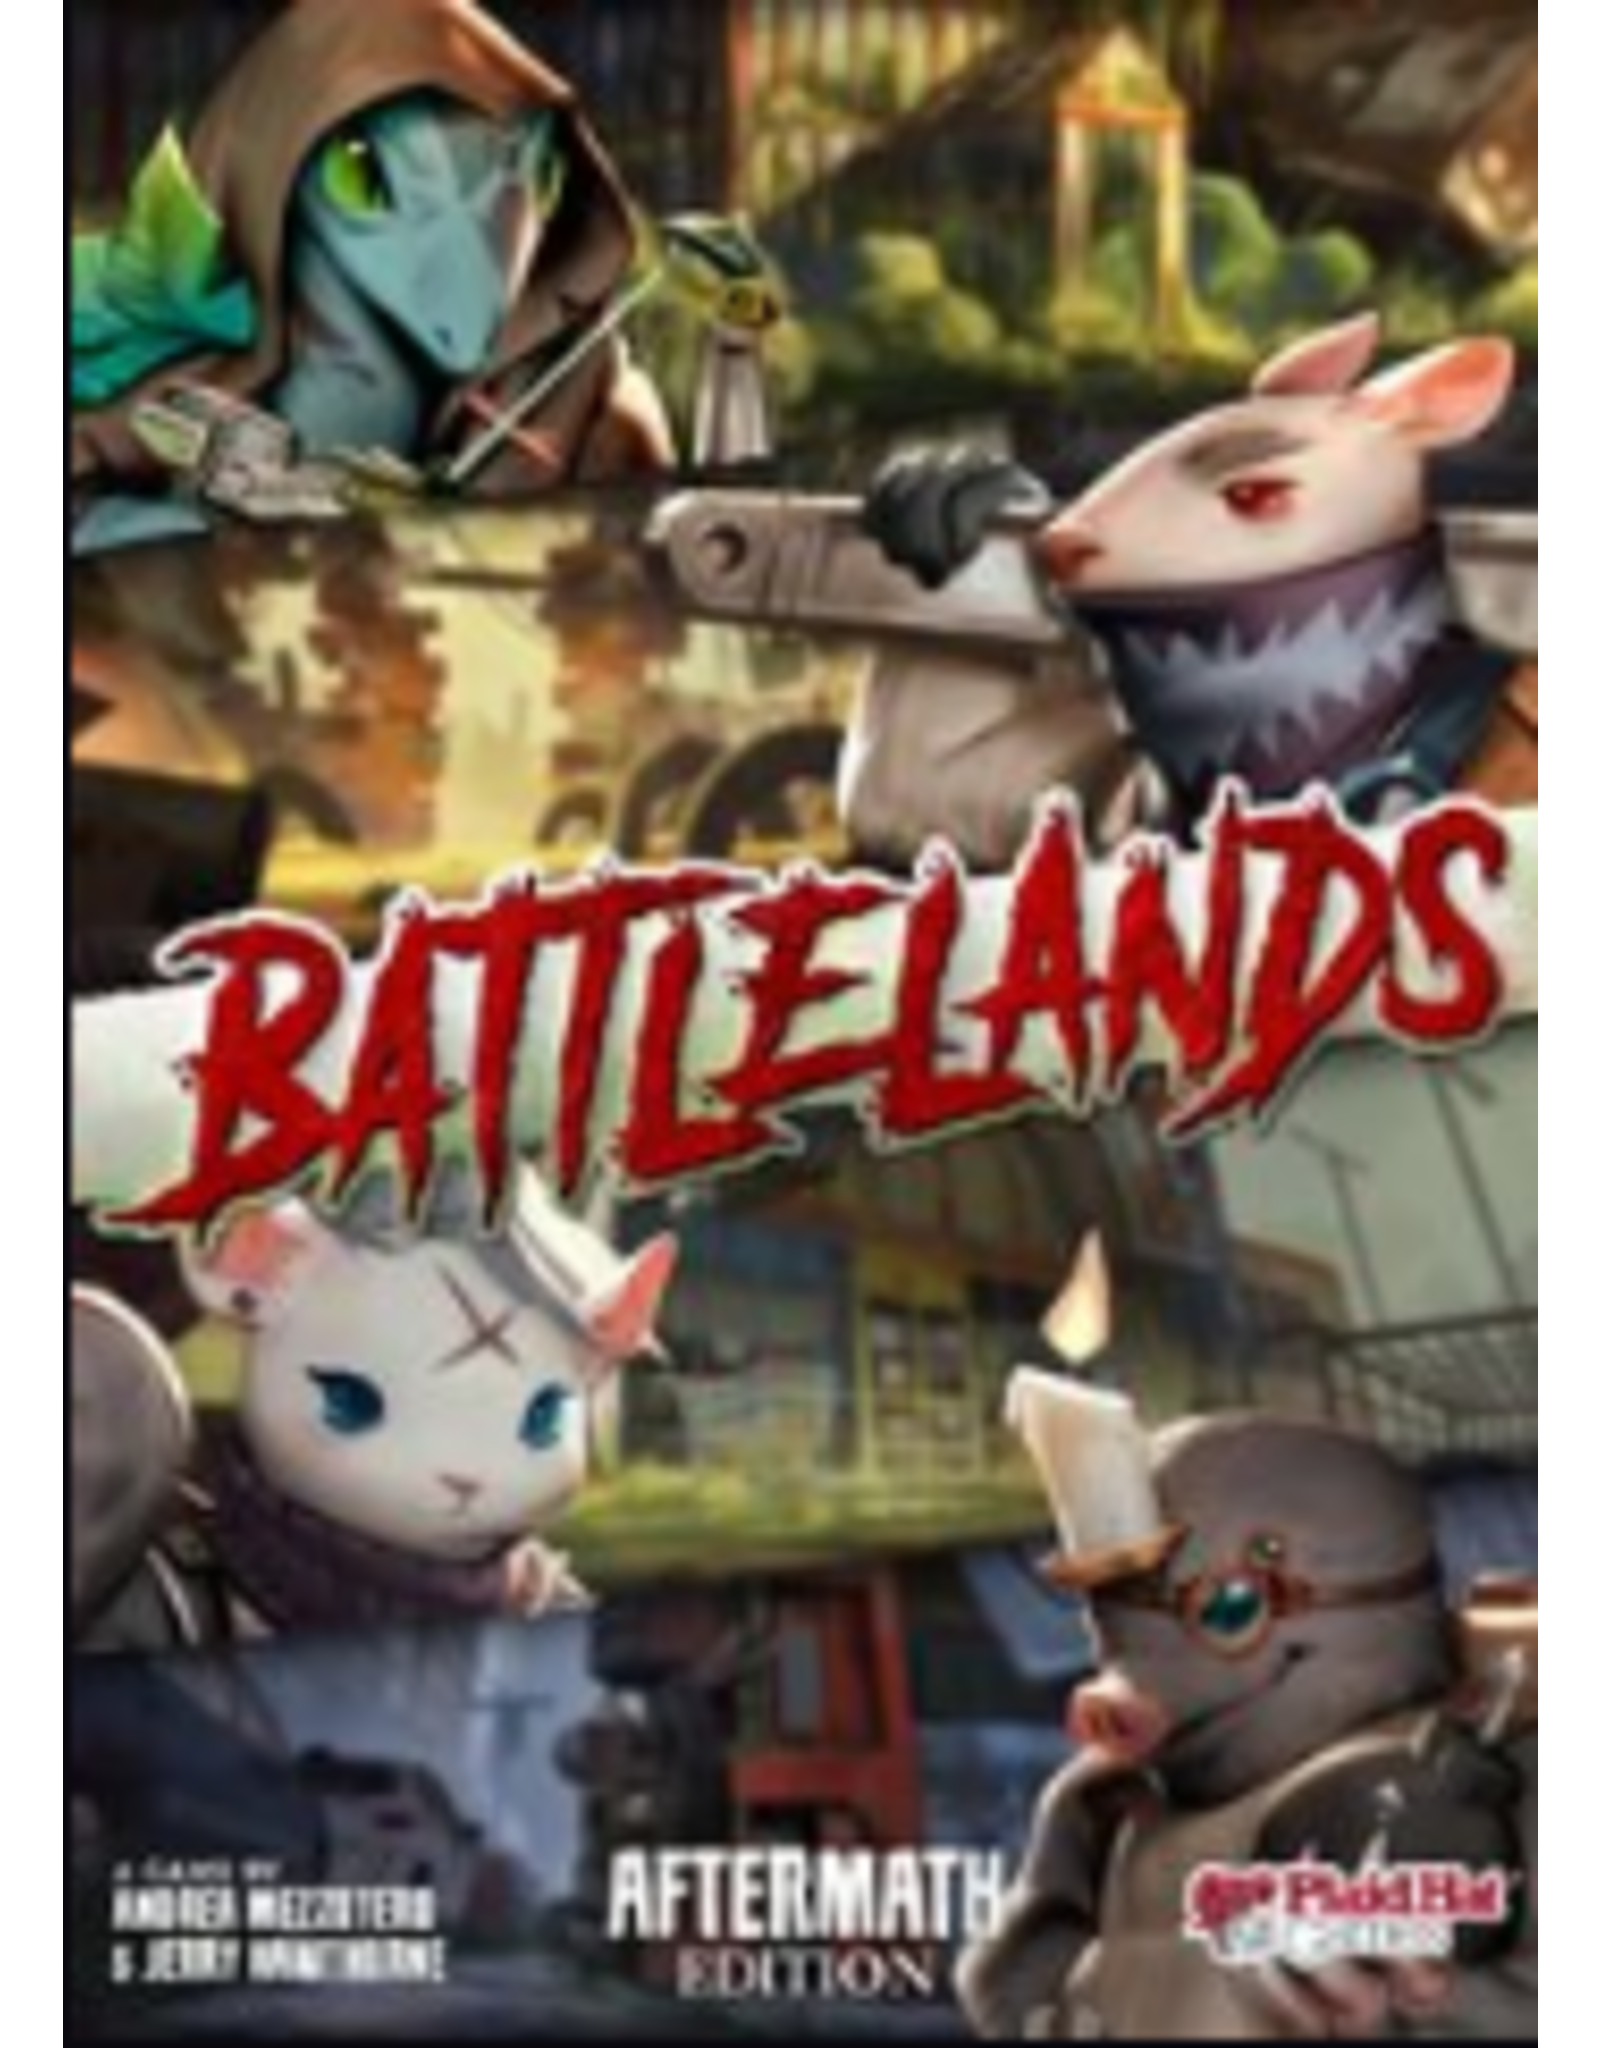 Plaid Hat Games Battlelands